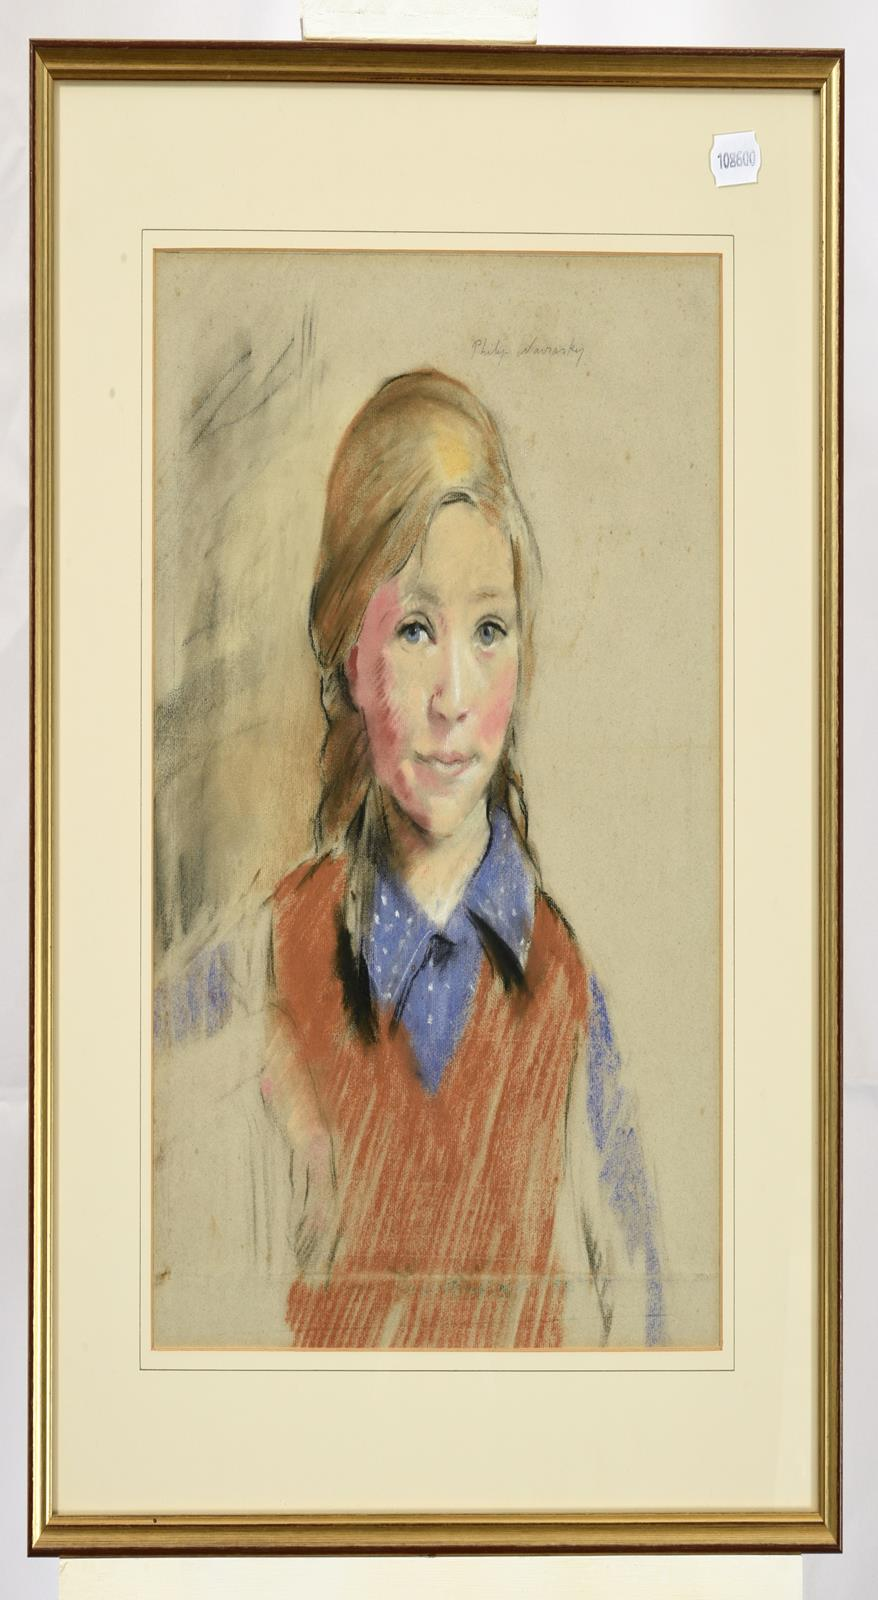 Philip Naviasky (1894-1983) Portrait of a young girl, head and shoulders, wearing a purple spotted - Image 2 of 3